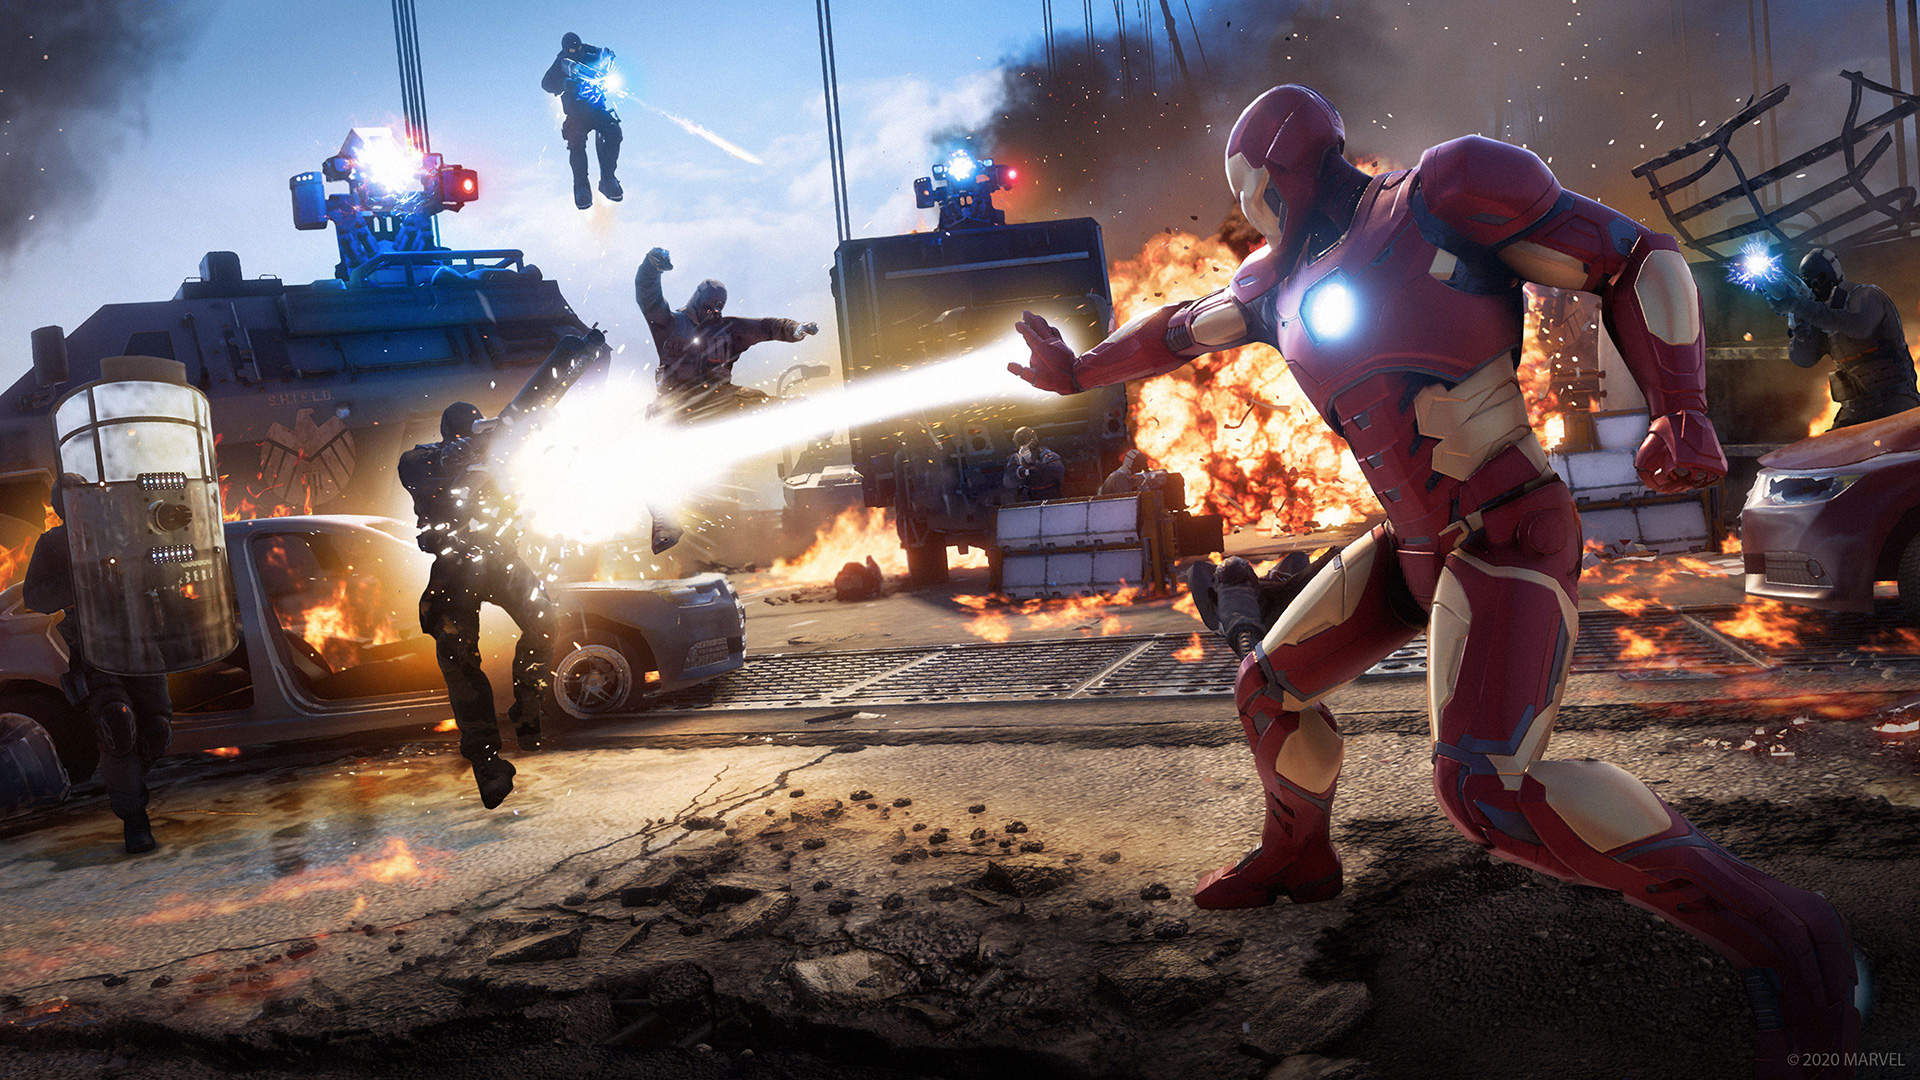 There is currently no couch co-op or offline co-op in Marvel's Avengers